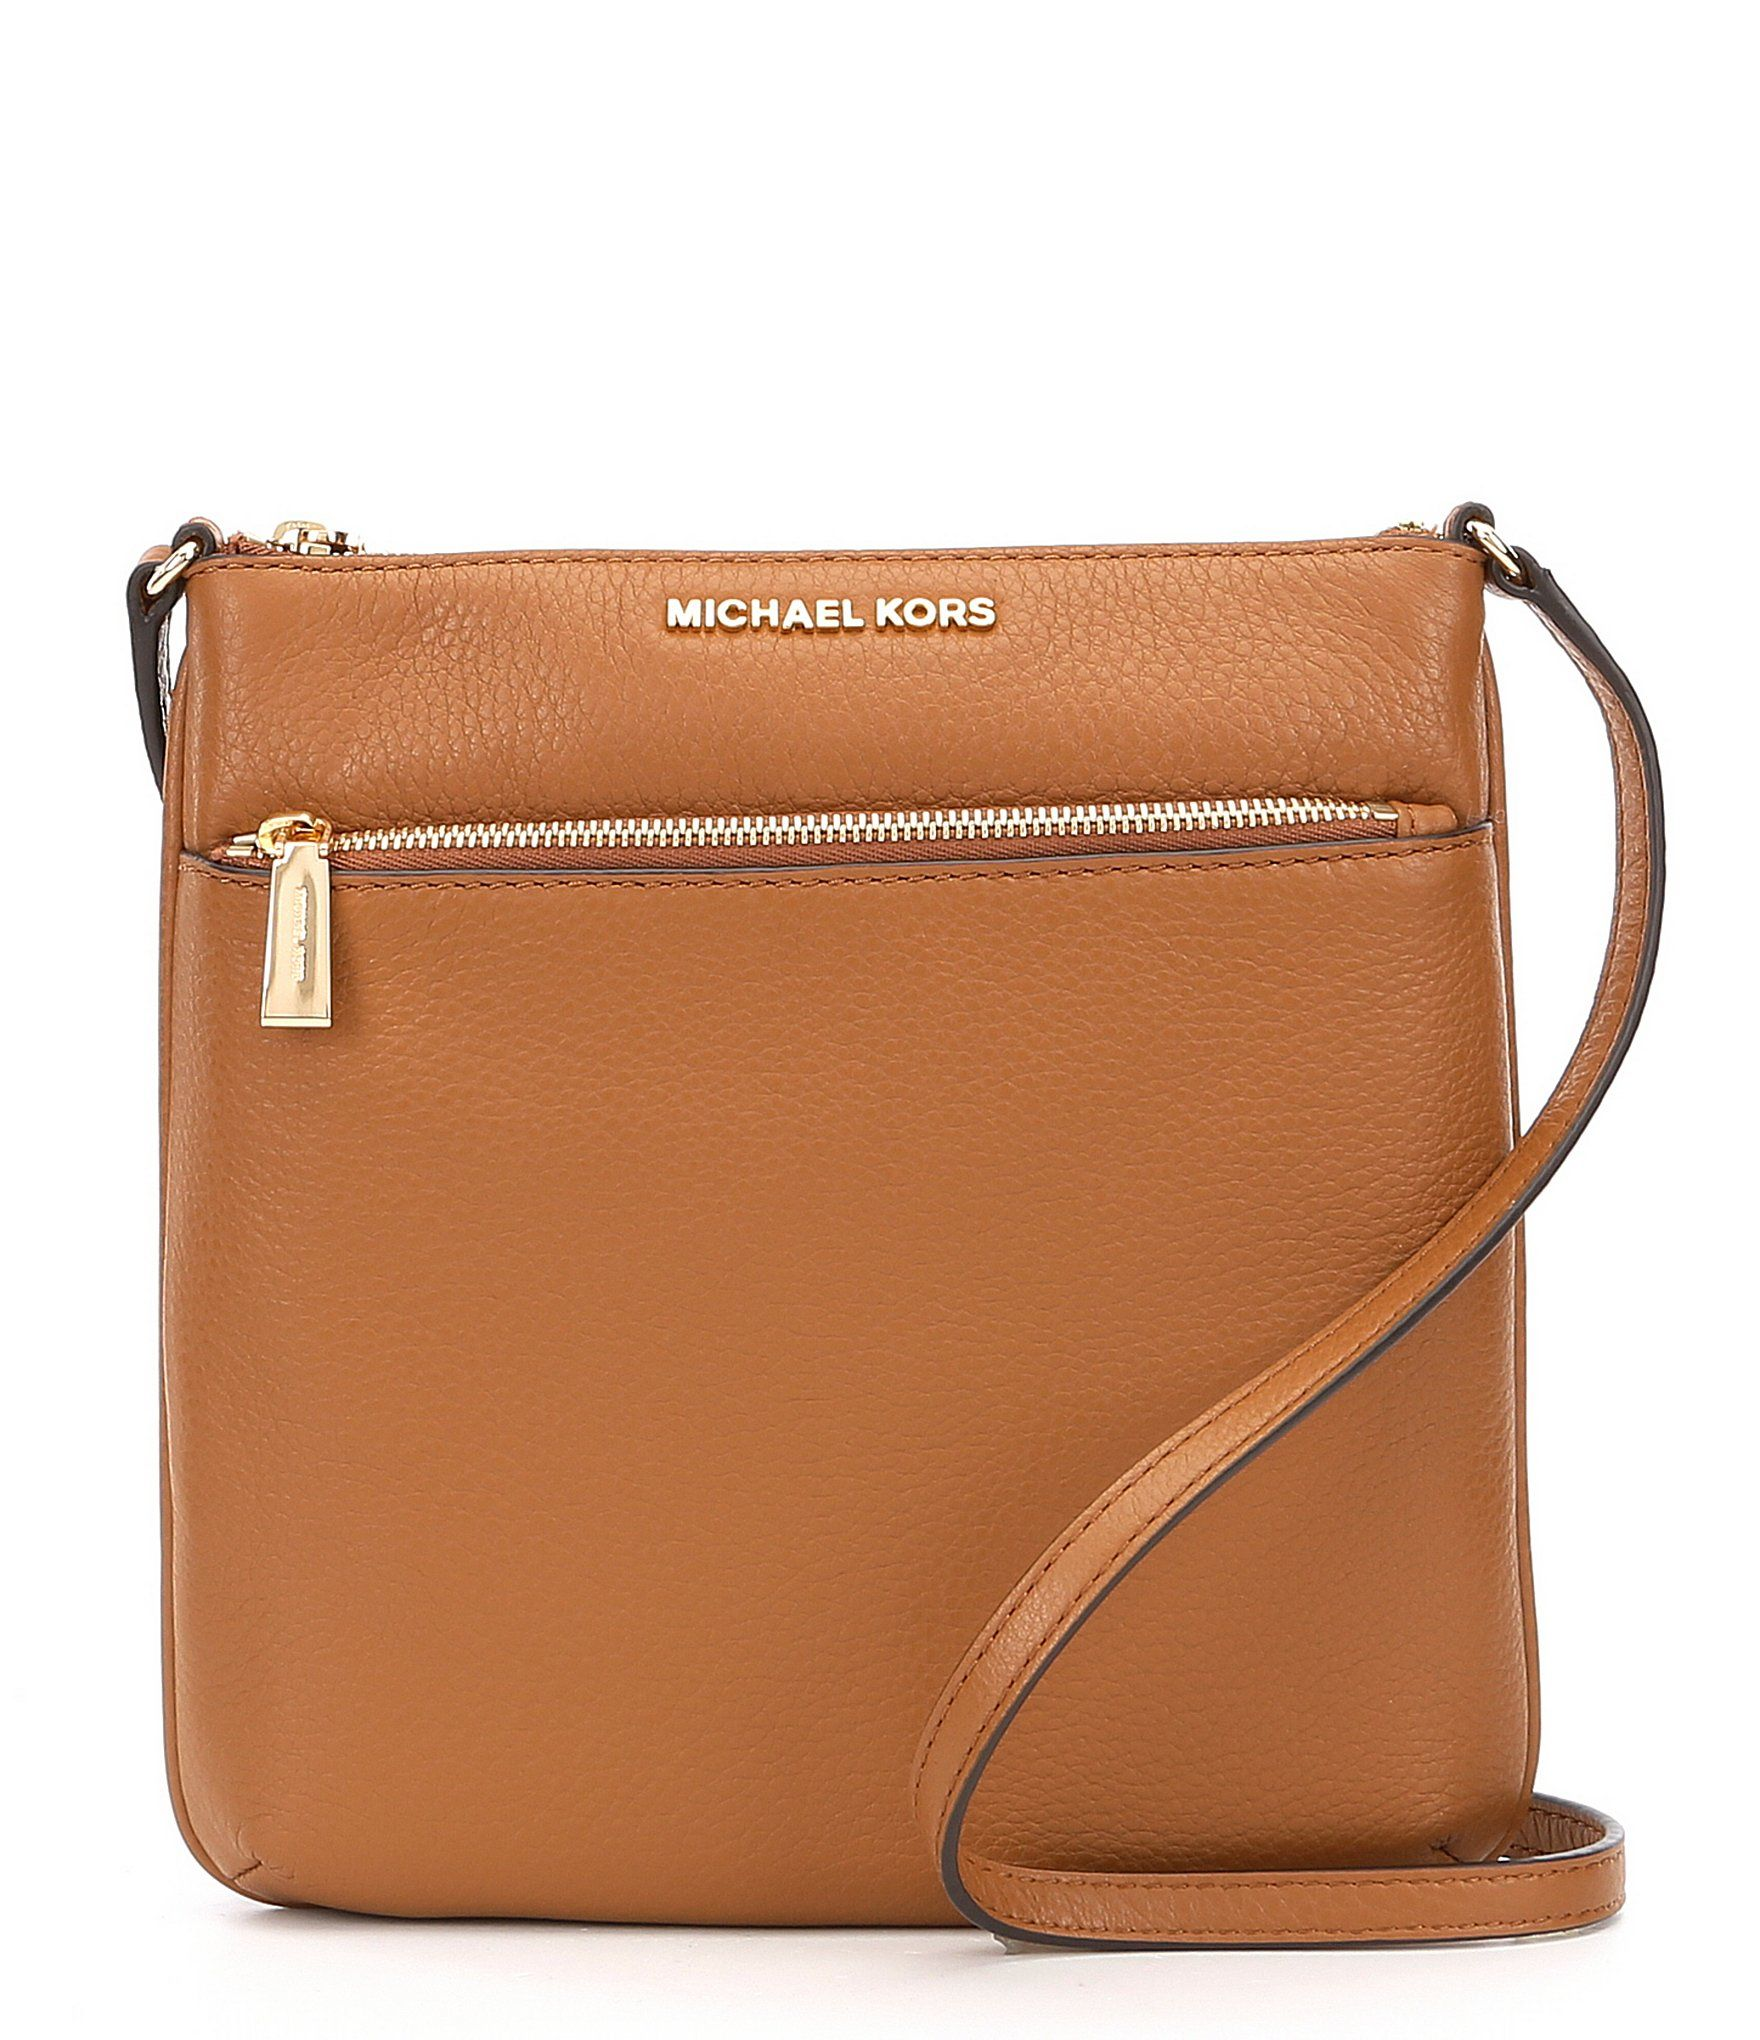 b9fd6feba0d6 Shop for MICHAEL Michael Kors Riley Small Flat Cross-Body Bag at Dillards.com.  Visit Dillards.com to find clothing, accessories, shoes, cosmetics & more.